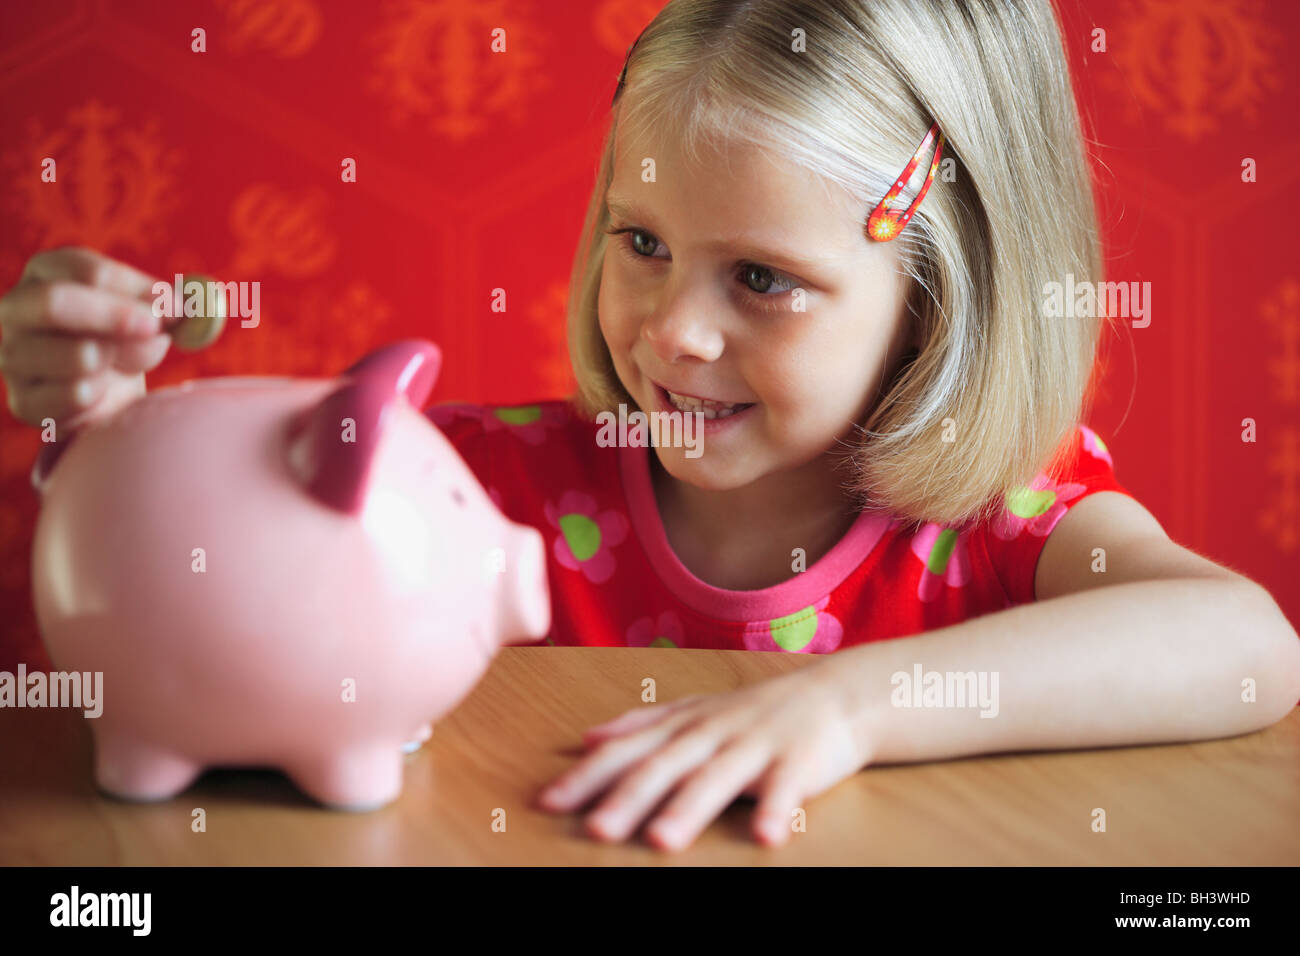 Young girl putting money into a pink piggy bank, smiling Stock Photo